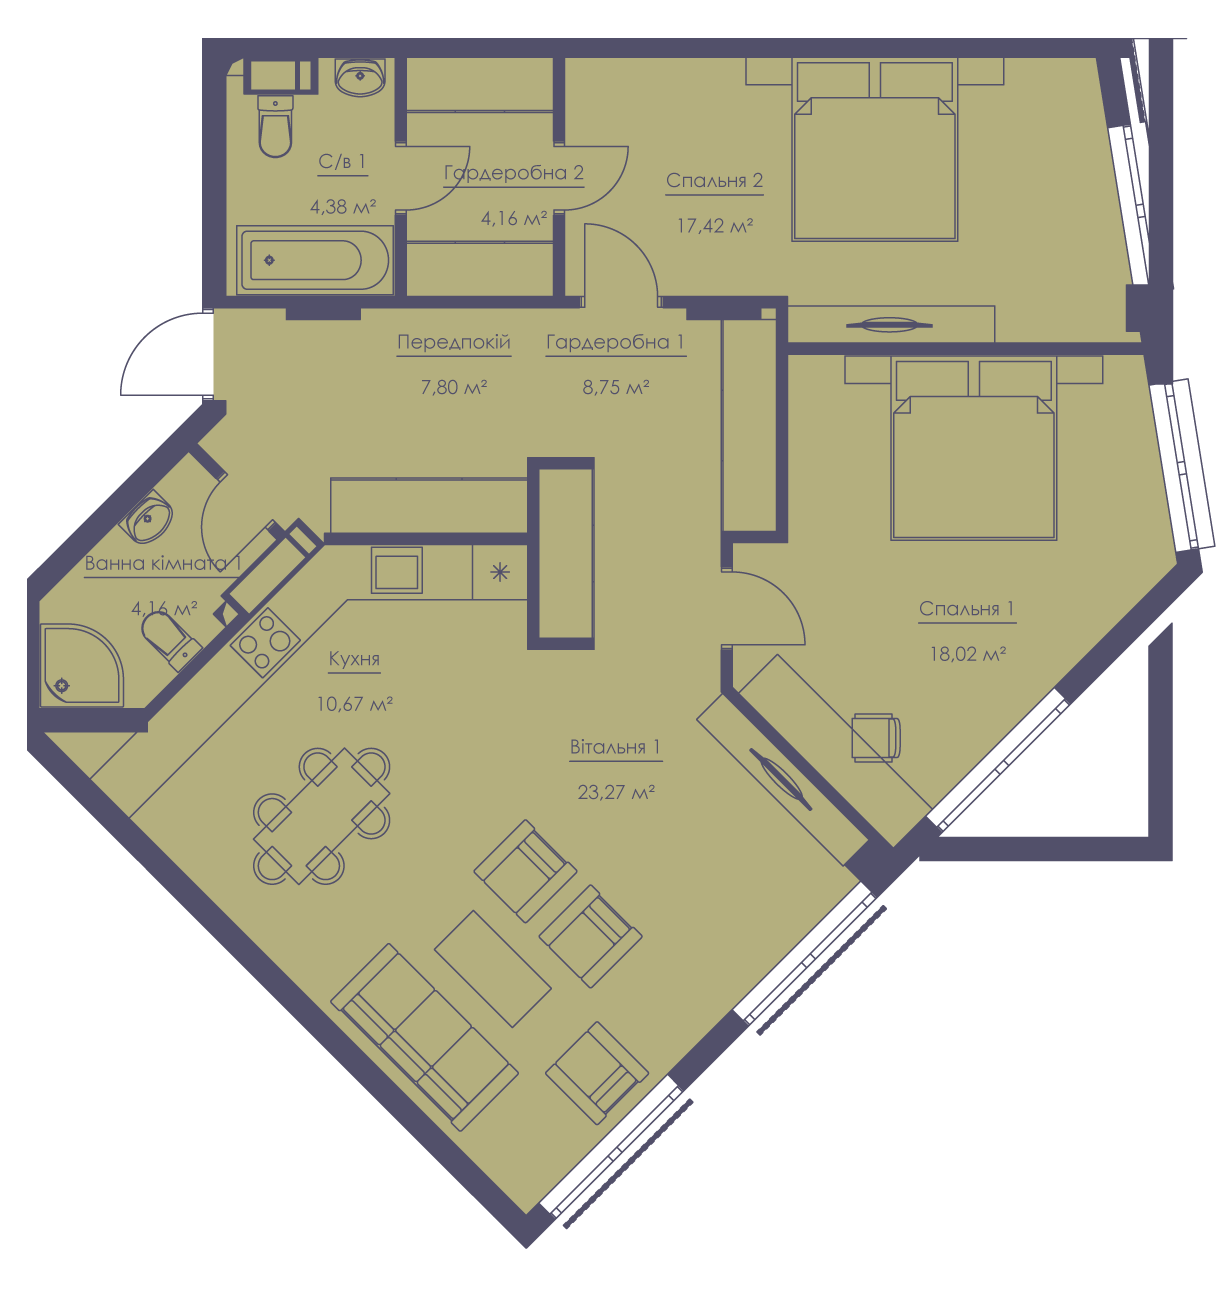 Apartment layout KV_123_3.3a_1_1_12-1